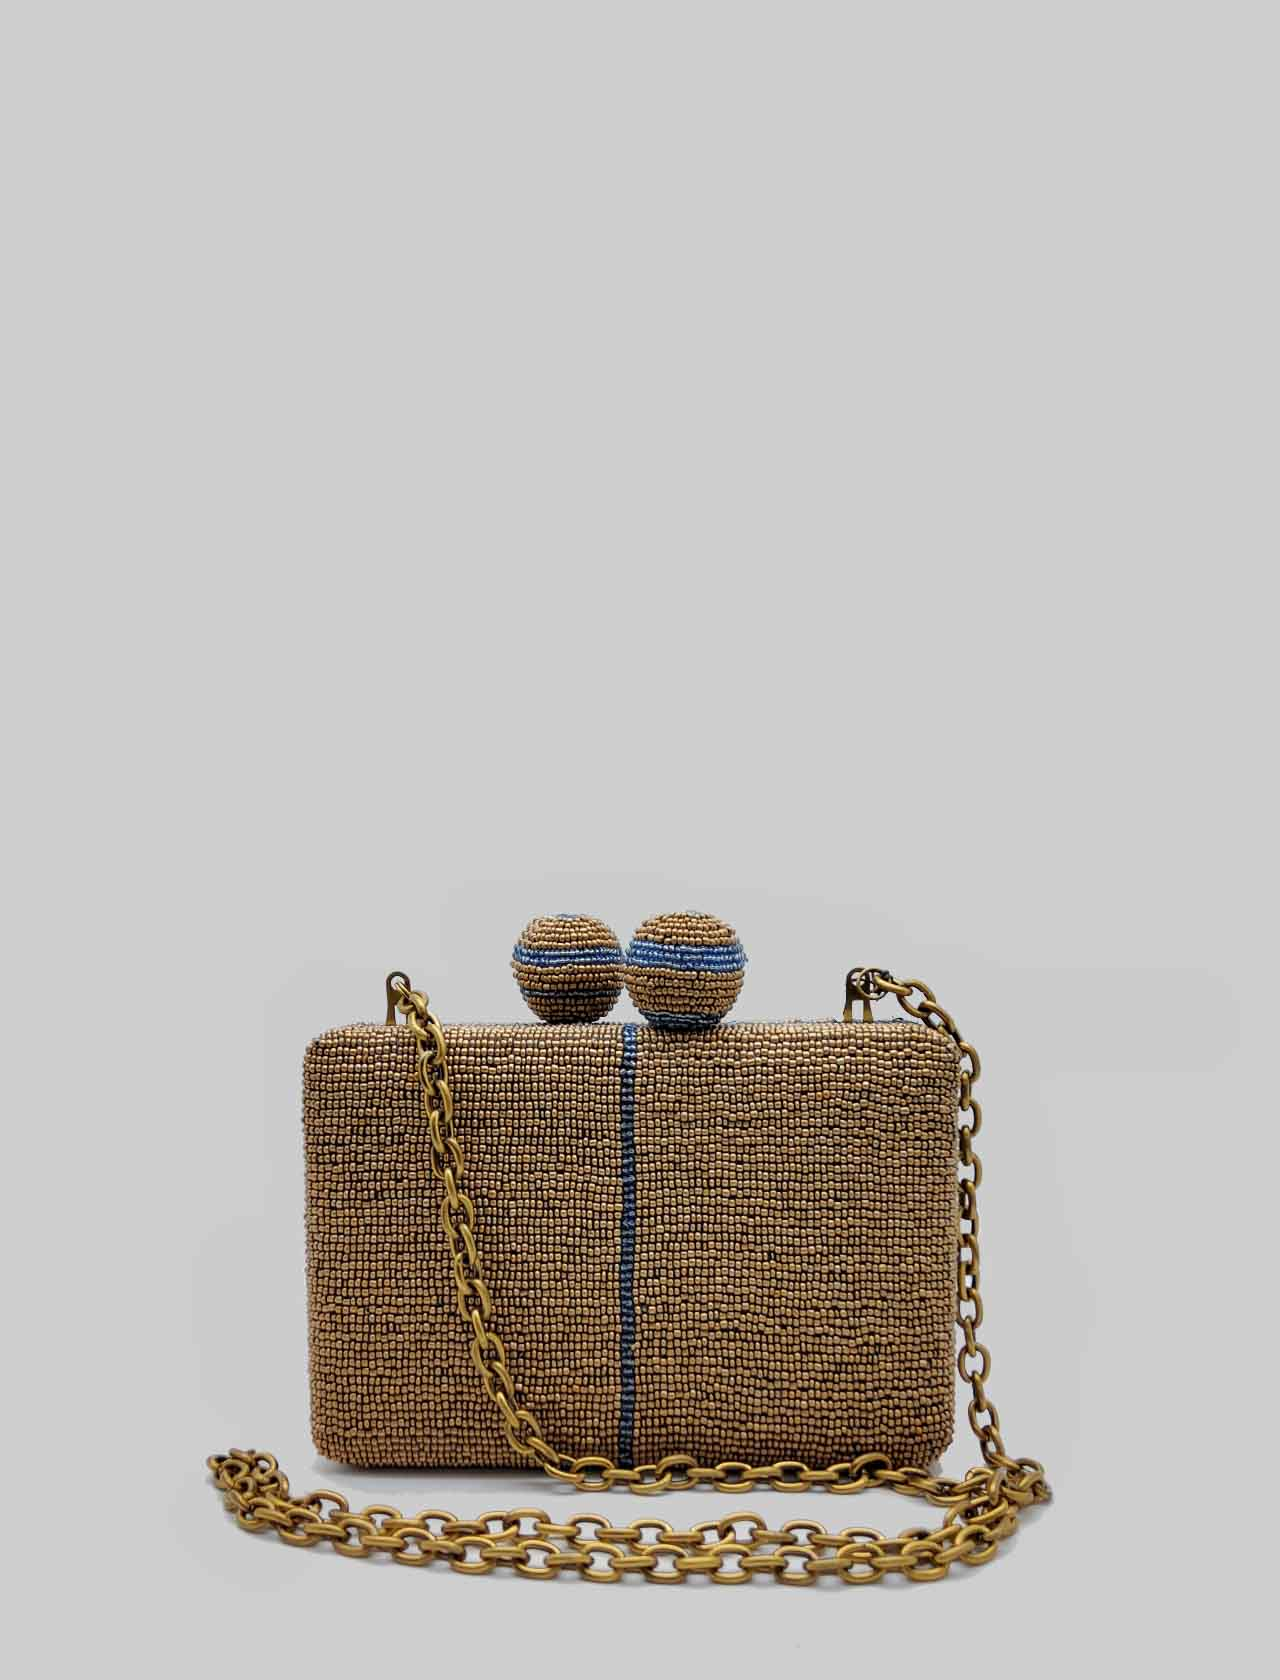 Woman Clutch Cuts & Beads Bag in Bronze and Light Blue Pattern with Removable Gold Chain Shoulder Strap Maliparmi   Bags and backpacks   BP00079106992B81